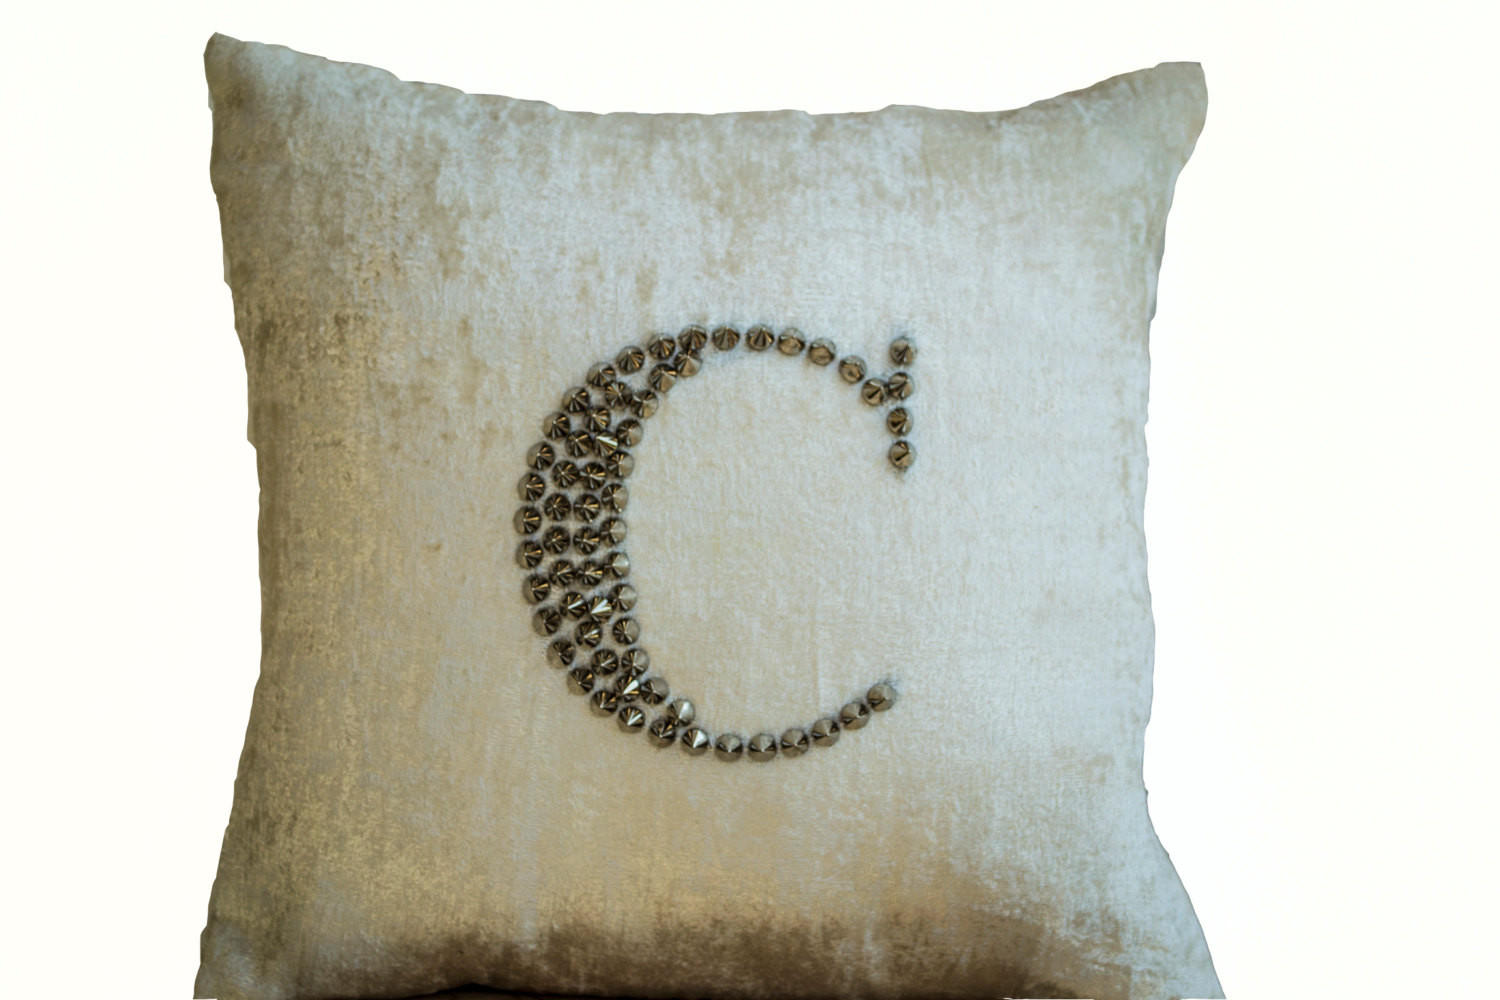 Ivory White Velvet throw pillows studded from casaamore-internati